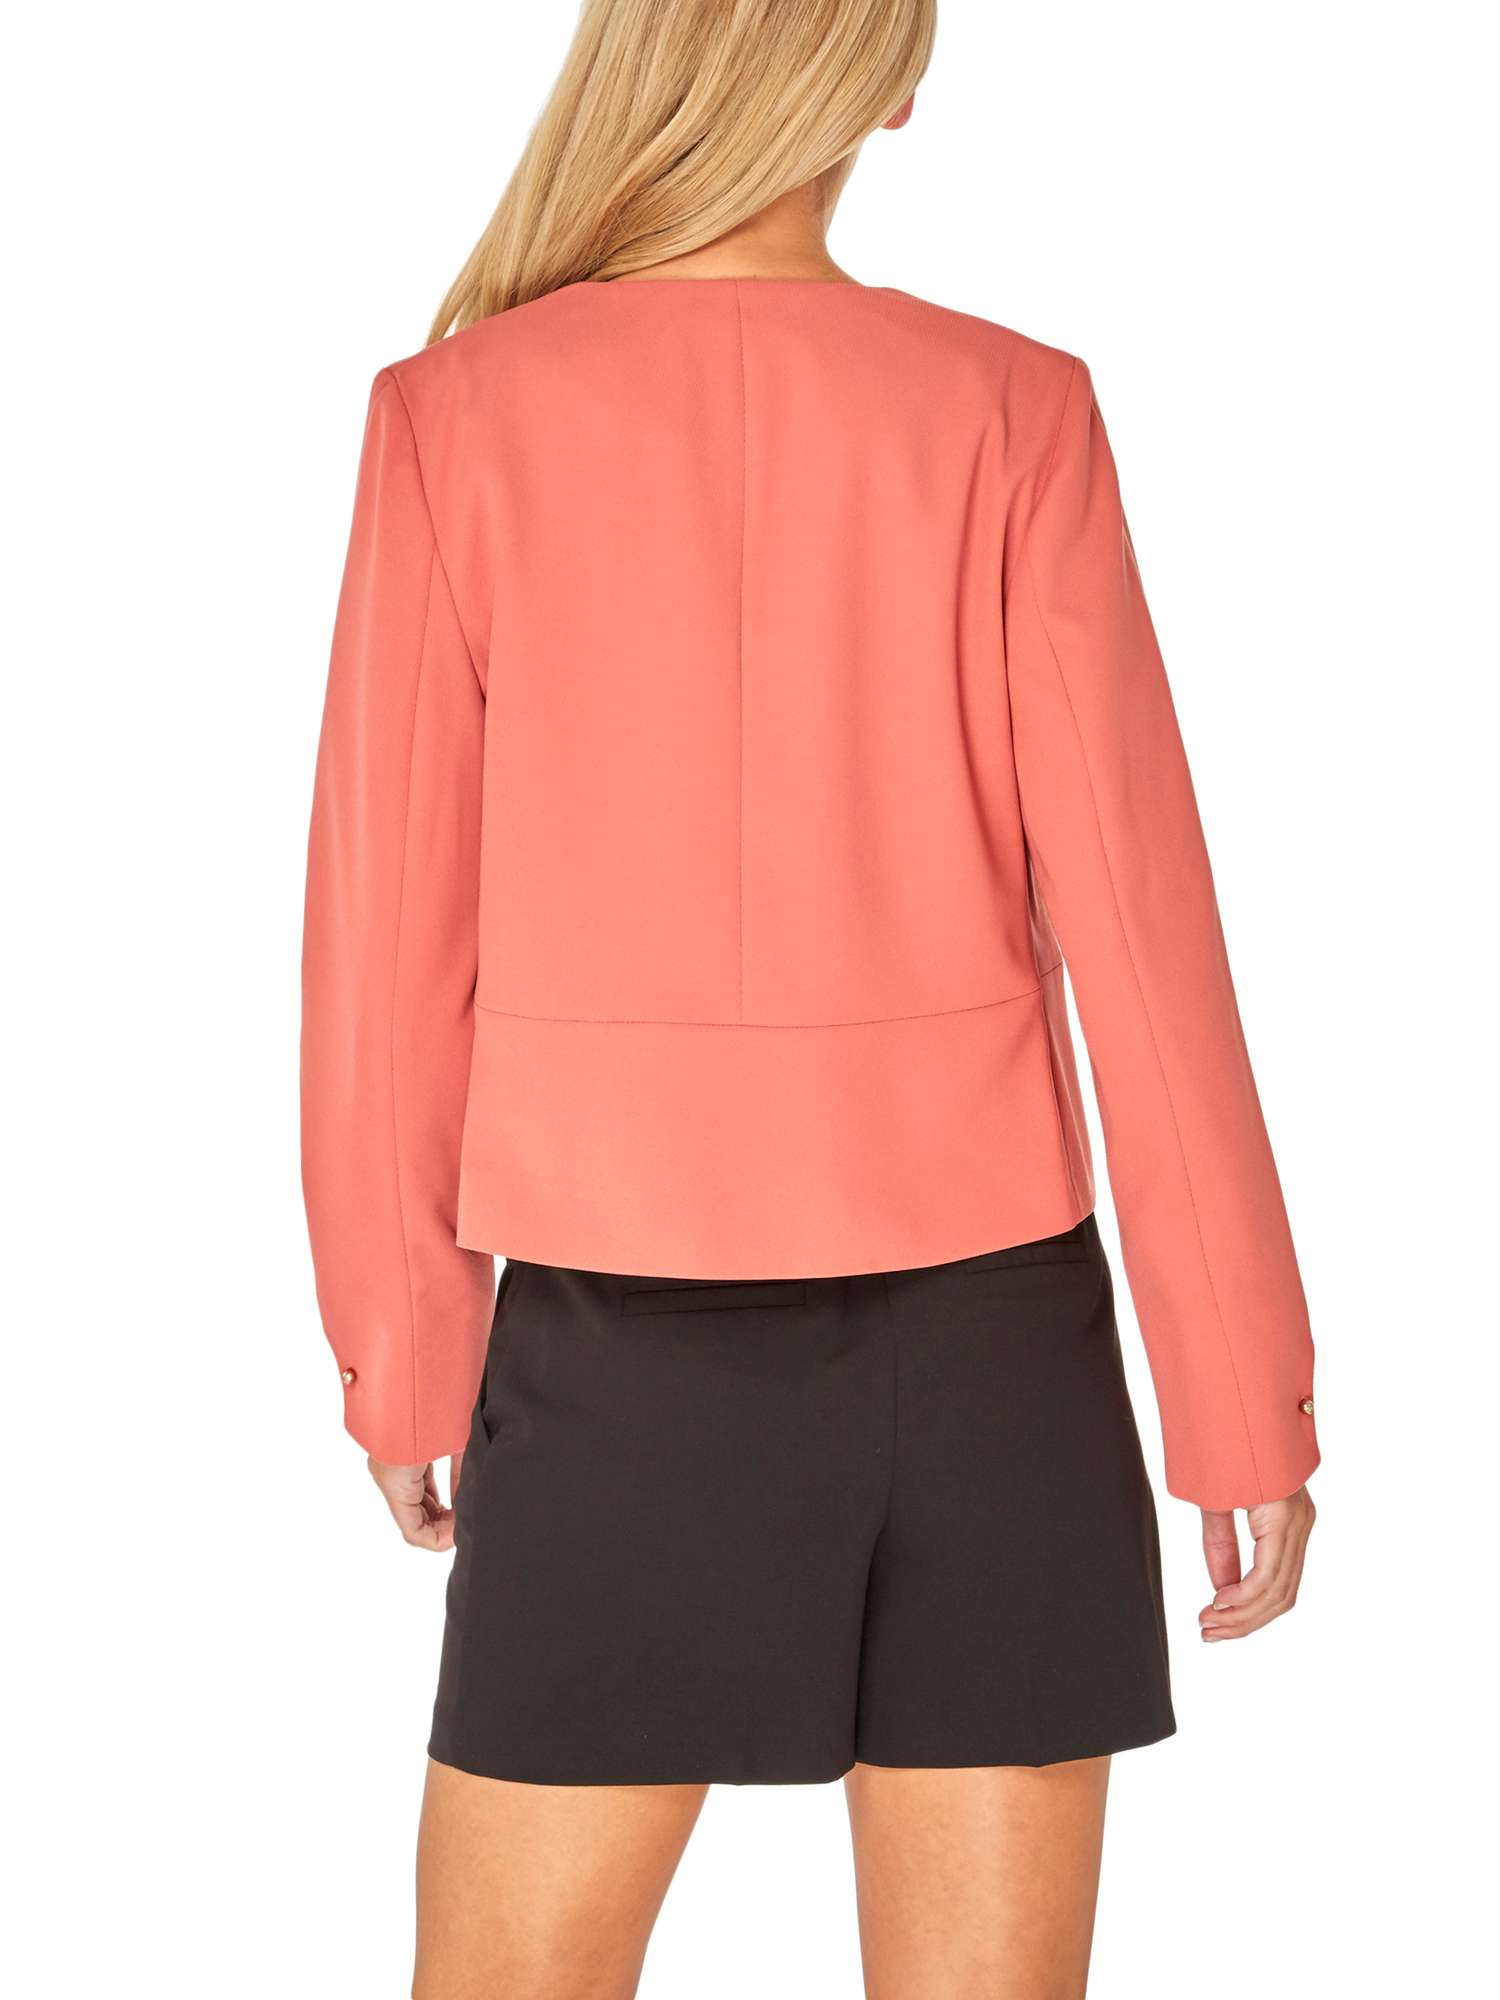 Perkins Dorothy Perkins Bar Bar Dorothy Bar Dorothy Jacket Perkins Jacket Cuff Jacket Cuff Cuff Dorothy Ppnfq8IS